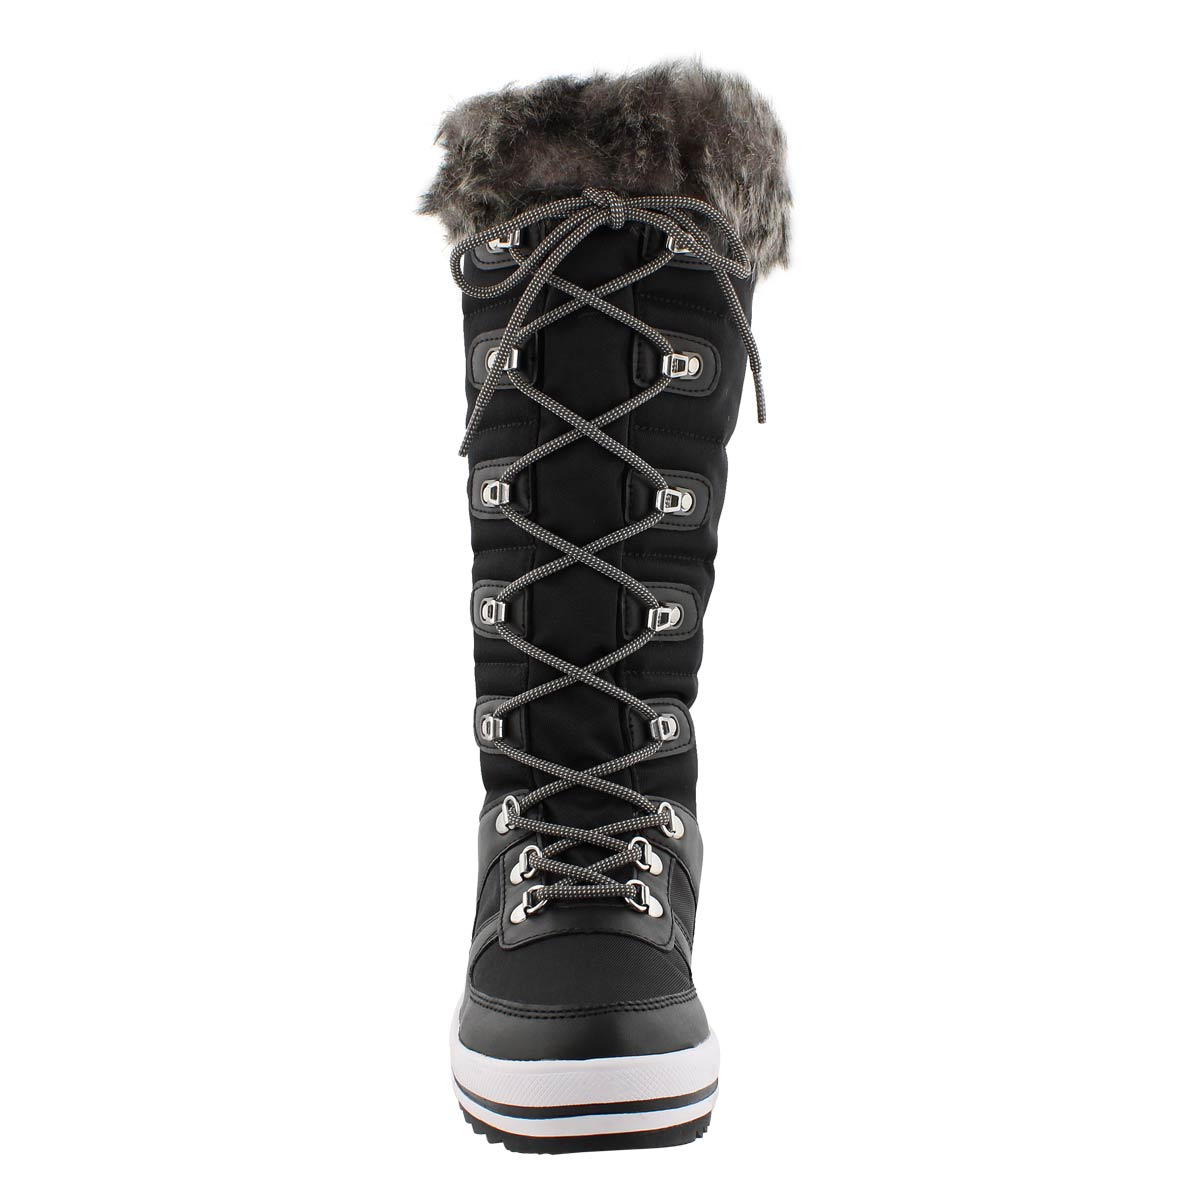 Lds Vesta blk wp lace up tall wntr boot